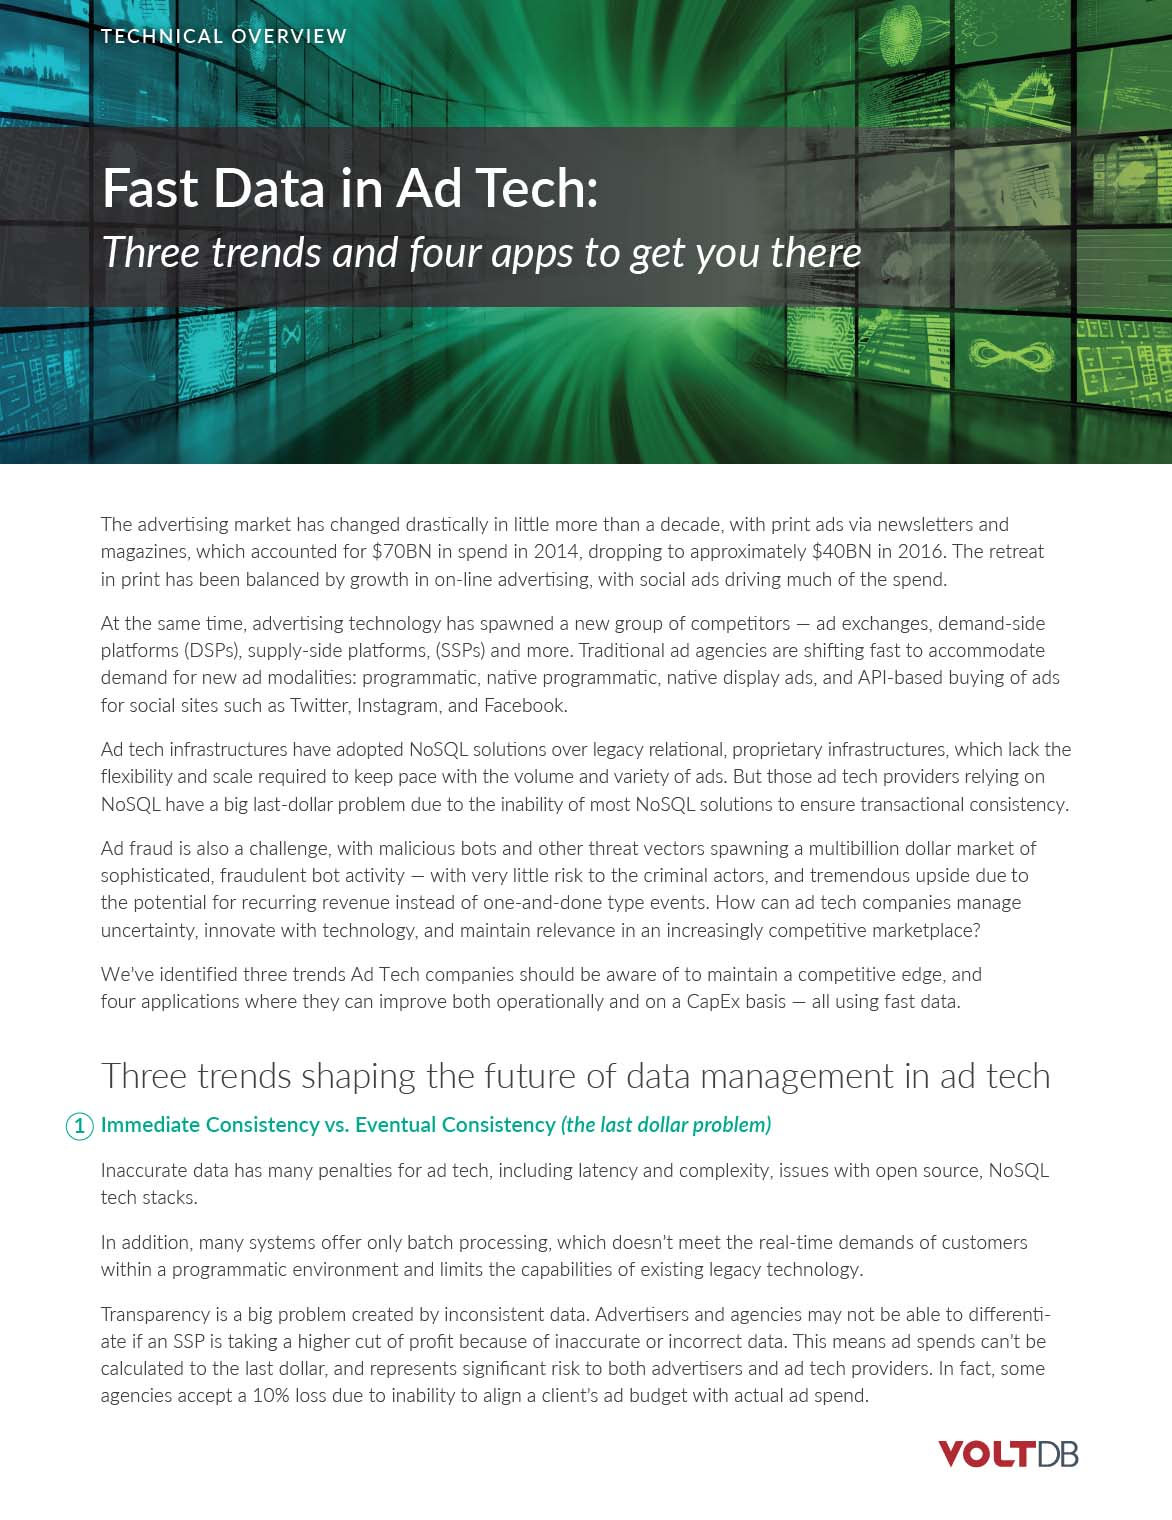 Fast Data in Adtech - VoltDB Technical Overview